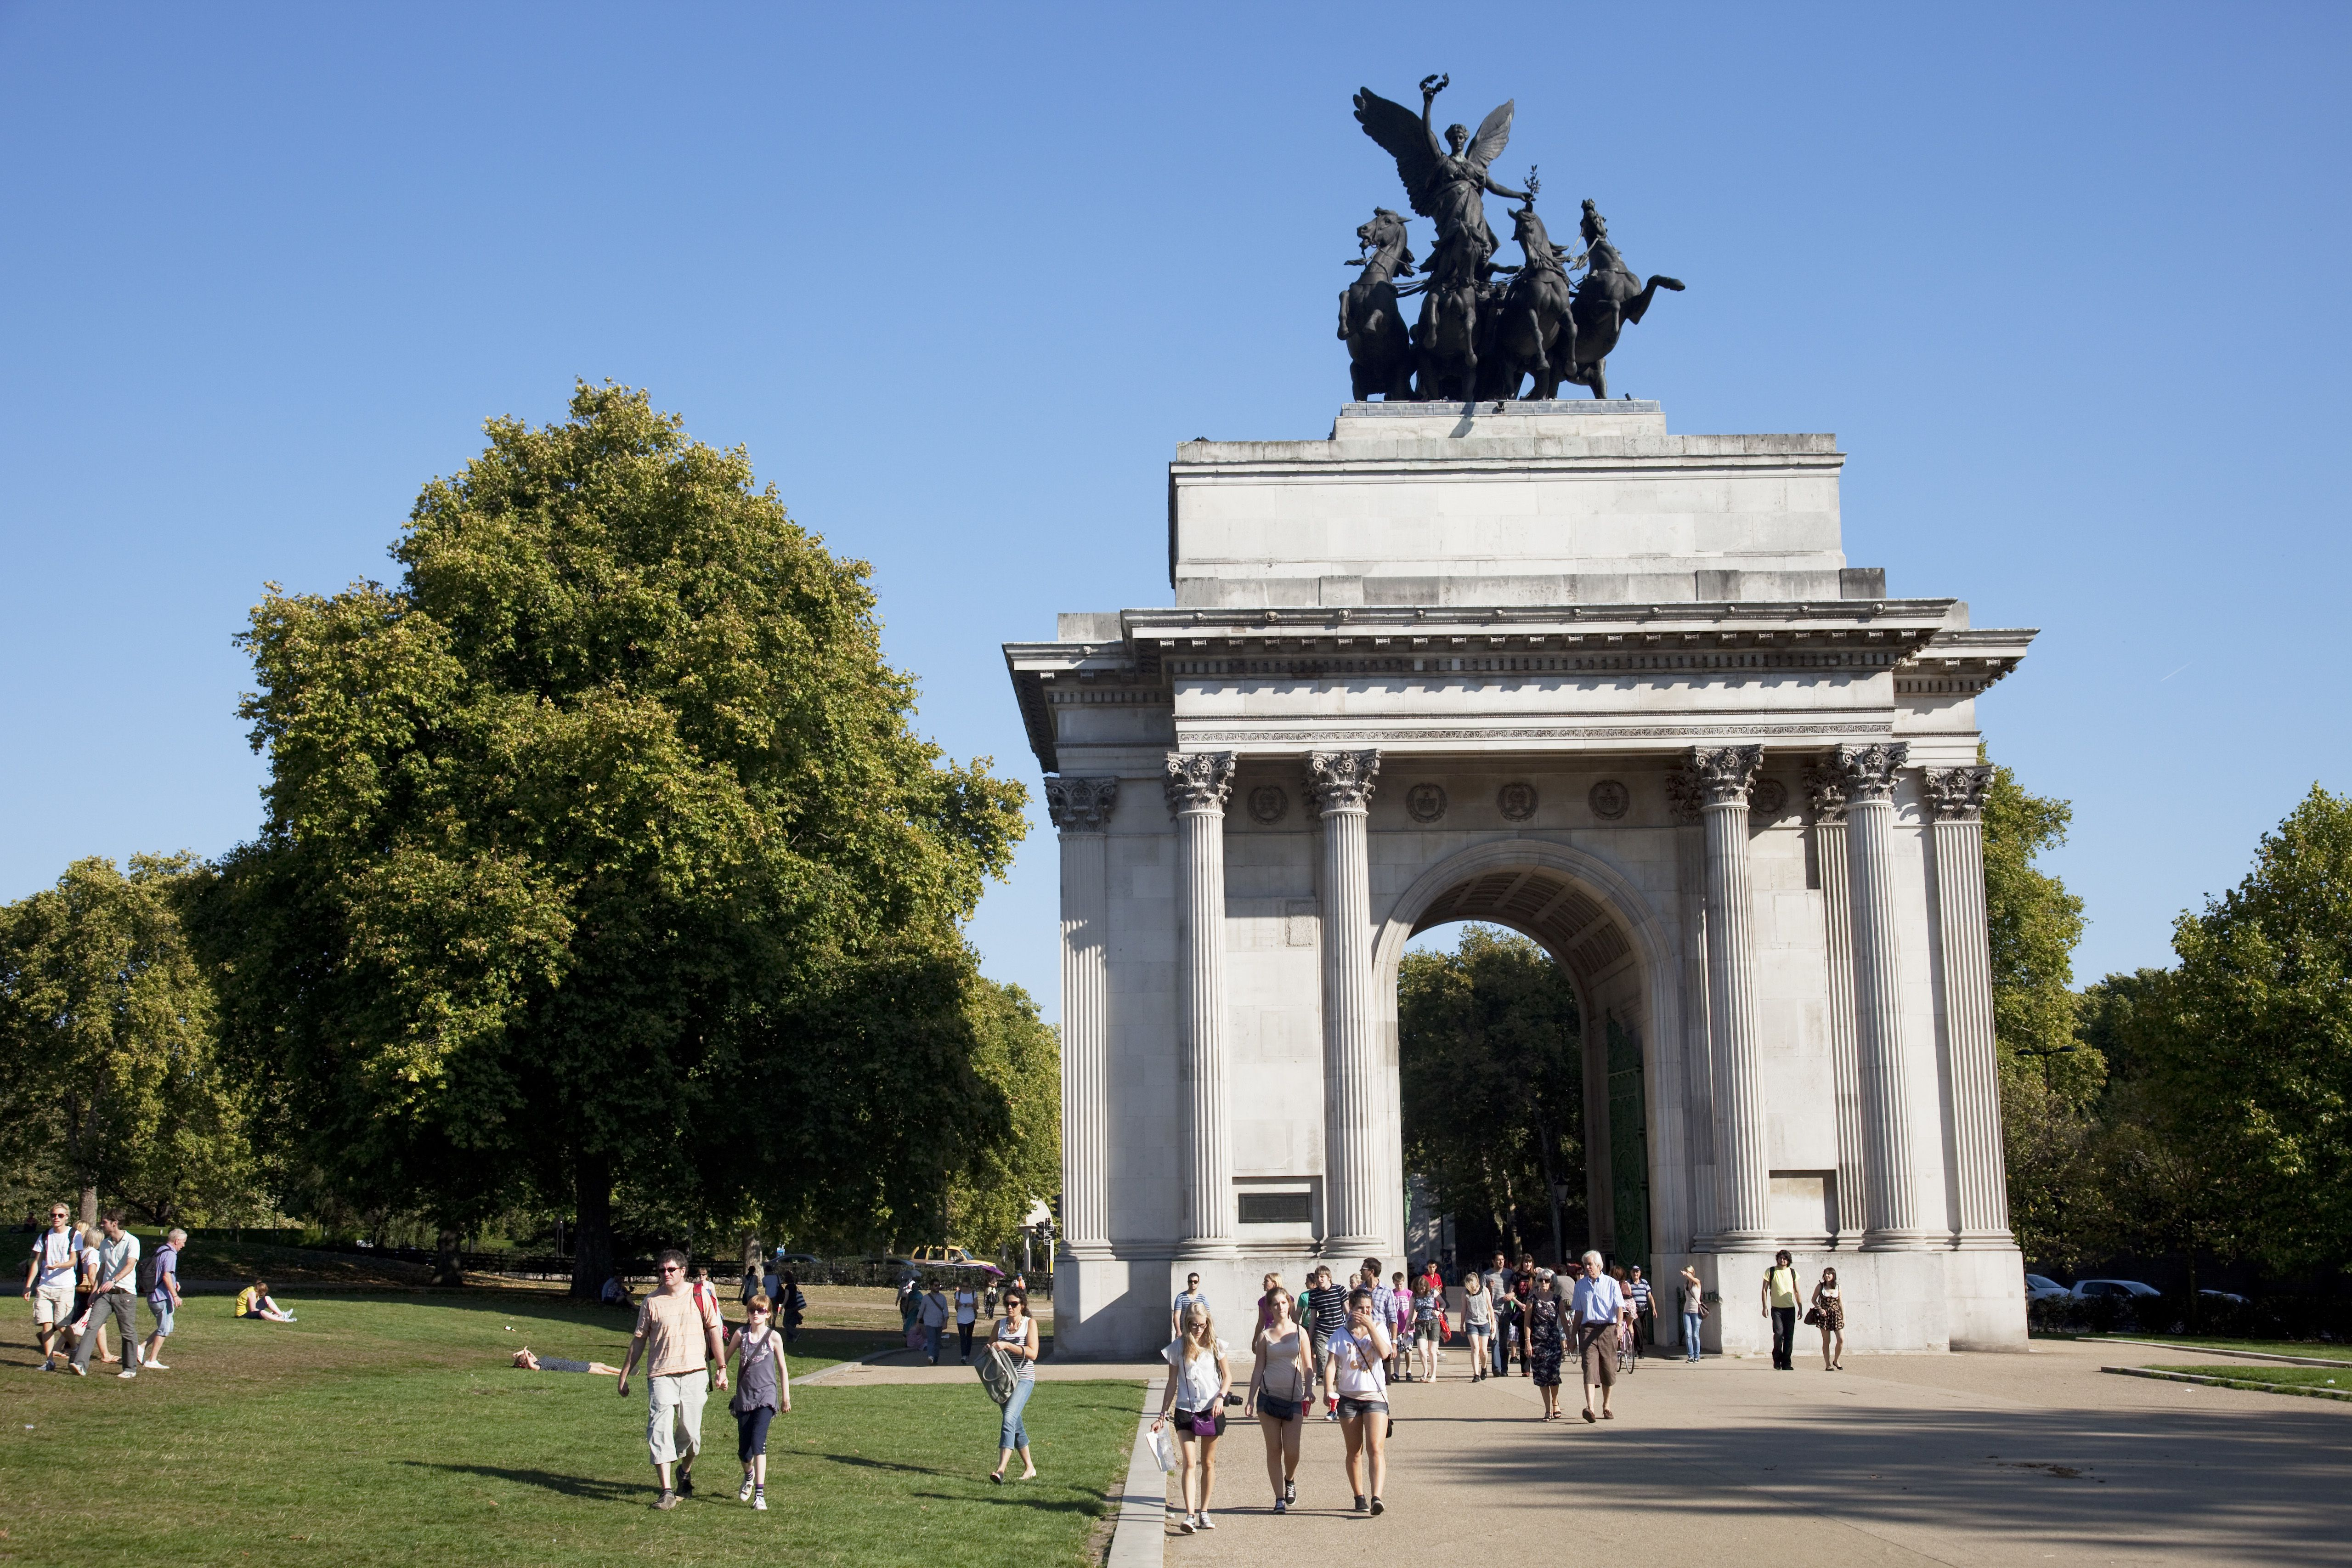 Summertime heat wave in Autumn gives London an Indian Summer Tourists near to Constitution Arch (Wellington Arch), a memorial to the Duke of Wellington and originally providing a grand entrance to London.